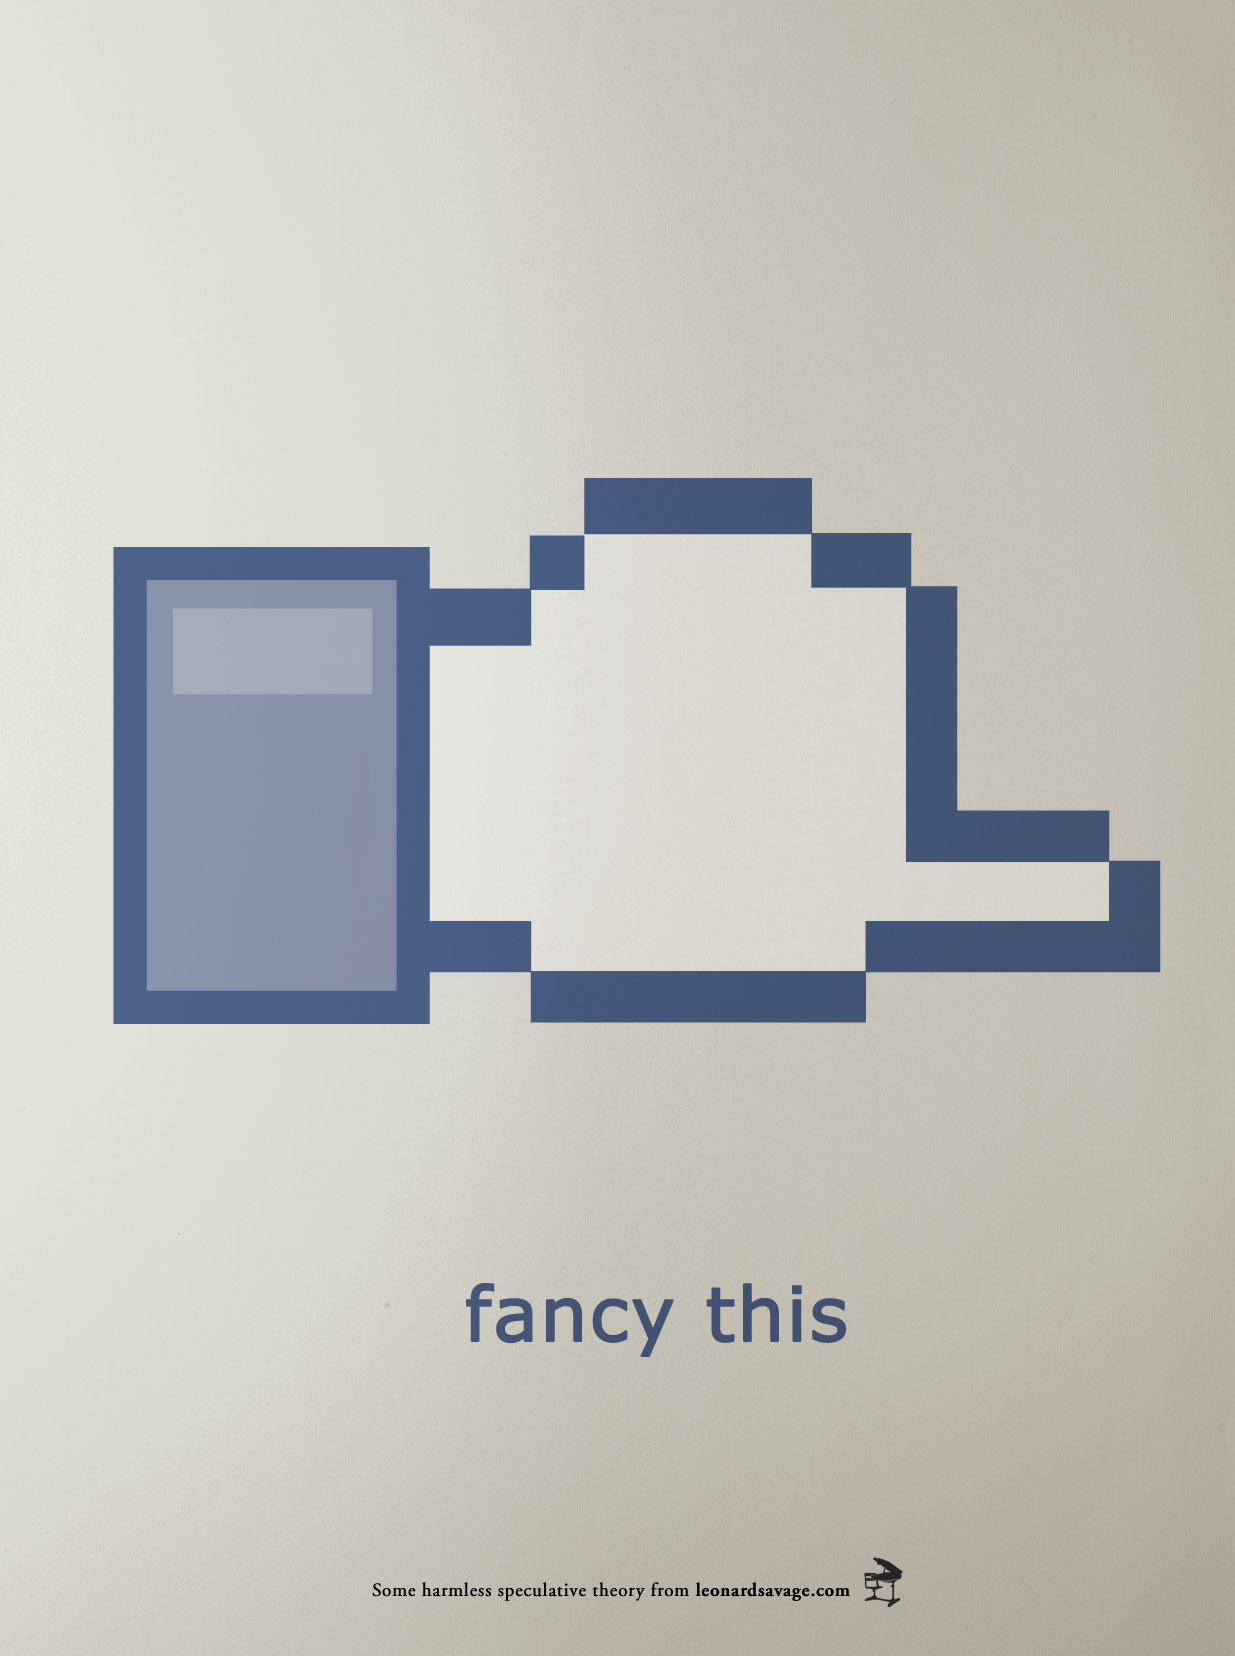 Icon im Facebook-Stil